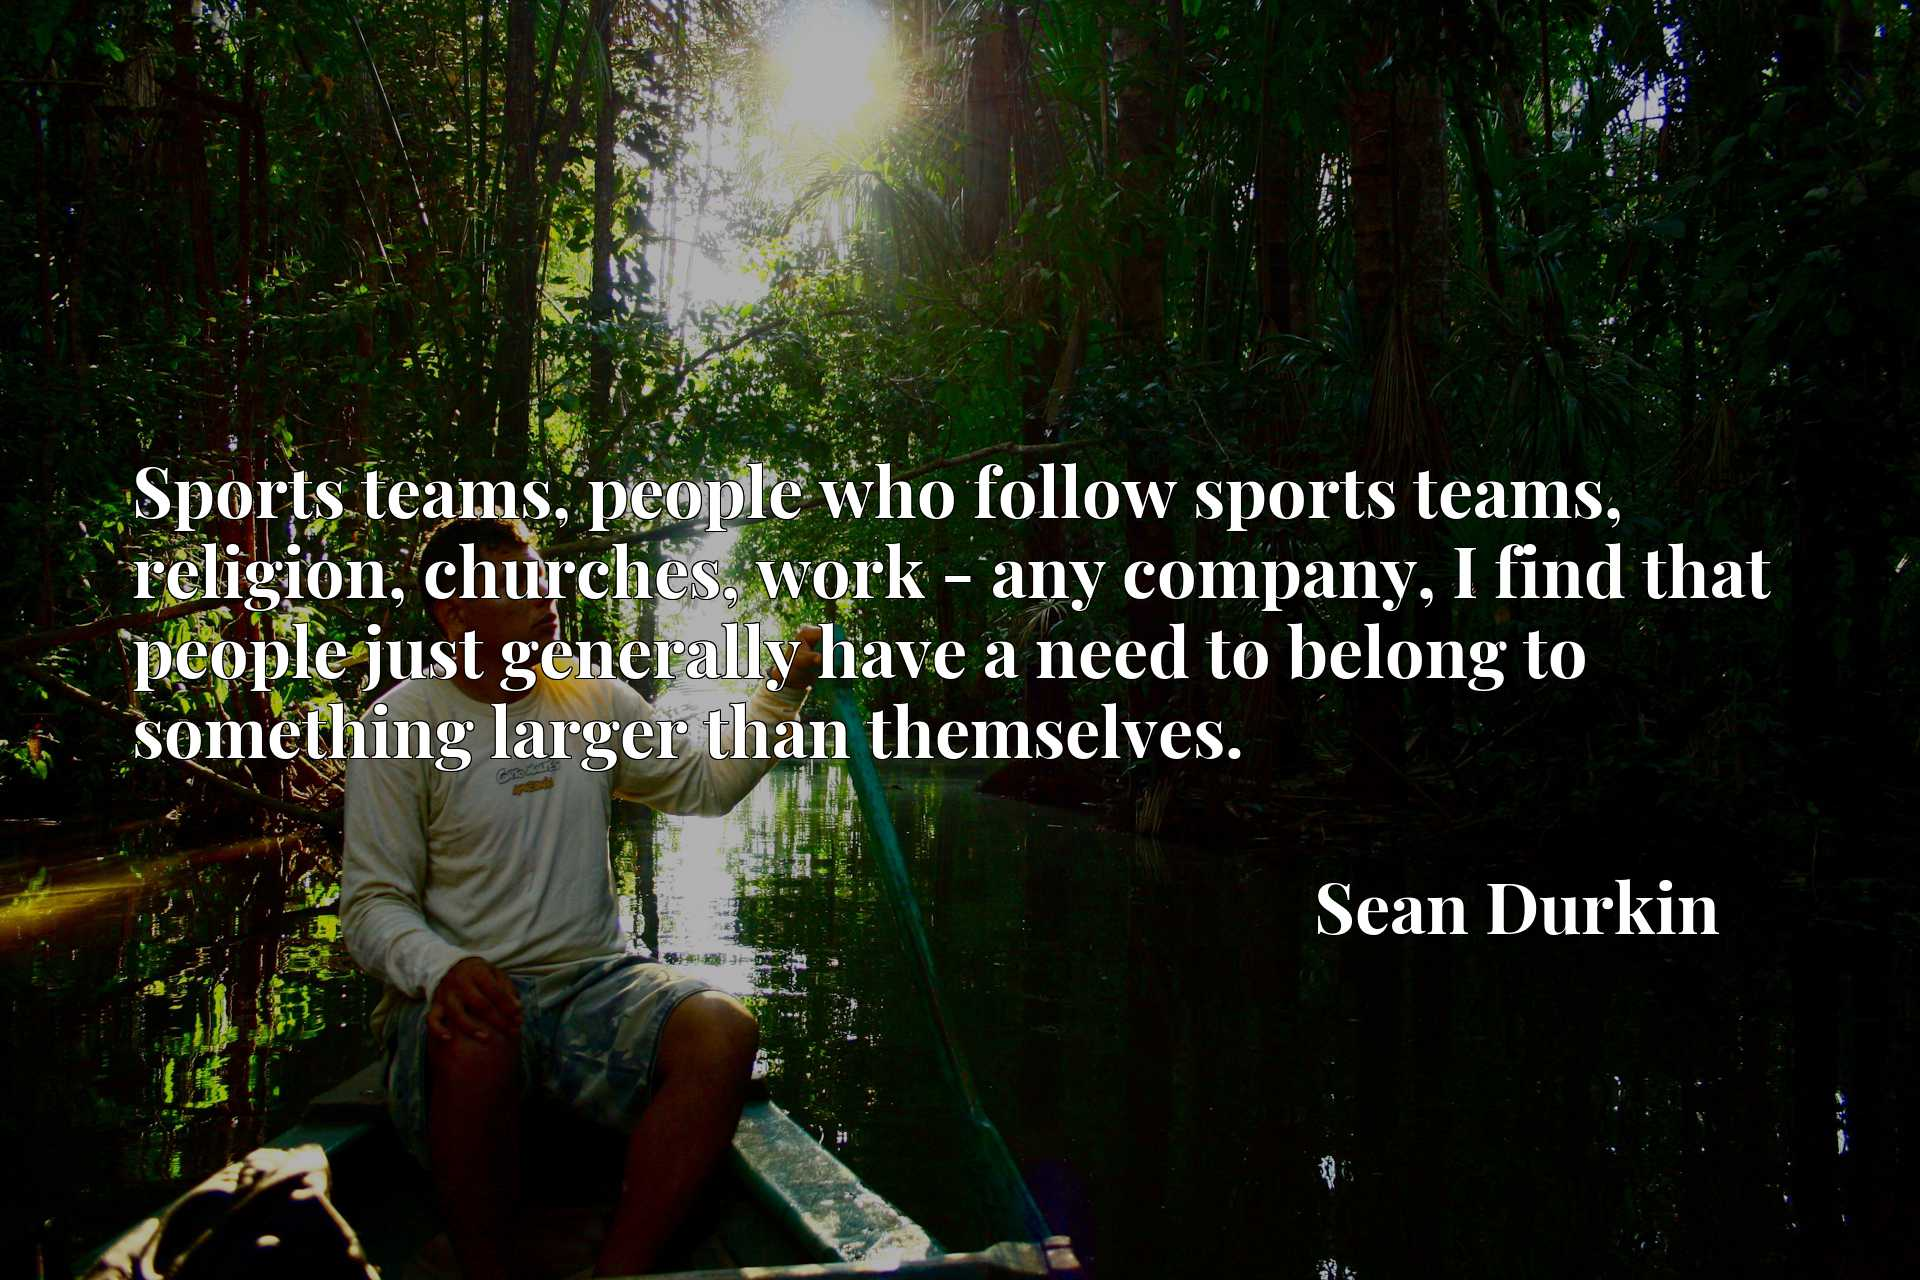 Sports teams, people who follow sports teams, religion, churches, work - any company, I find that people just generally have a need to belong to something larger than themselves.